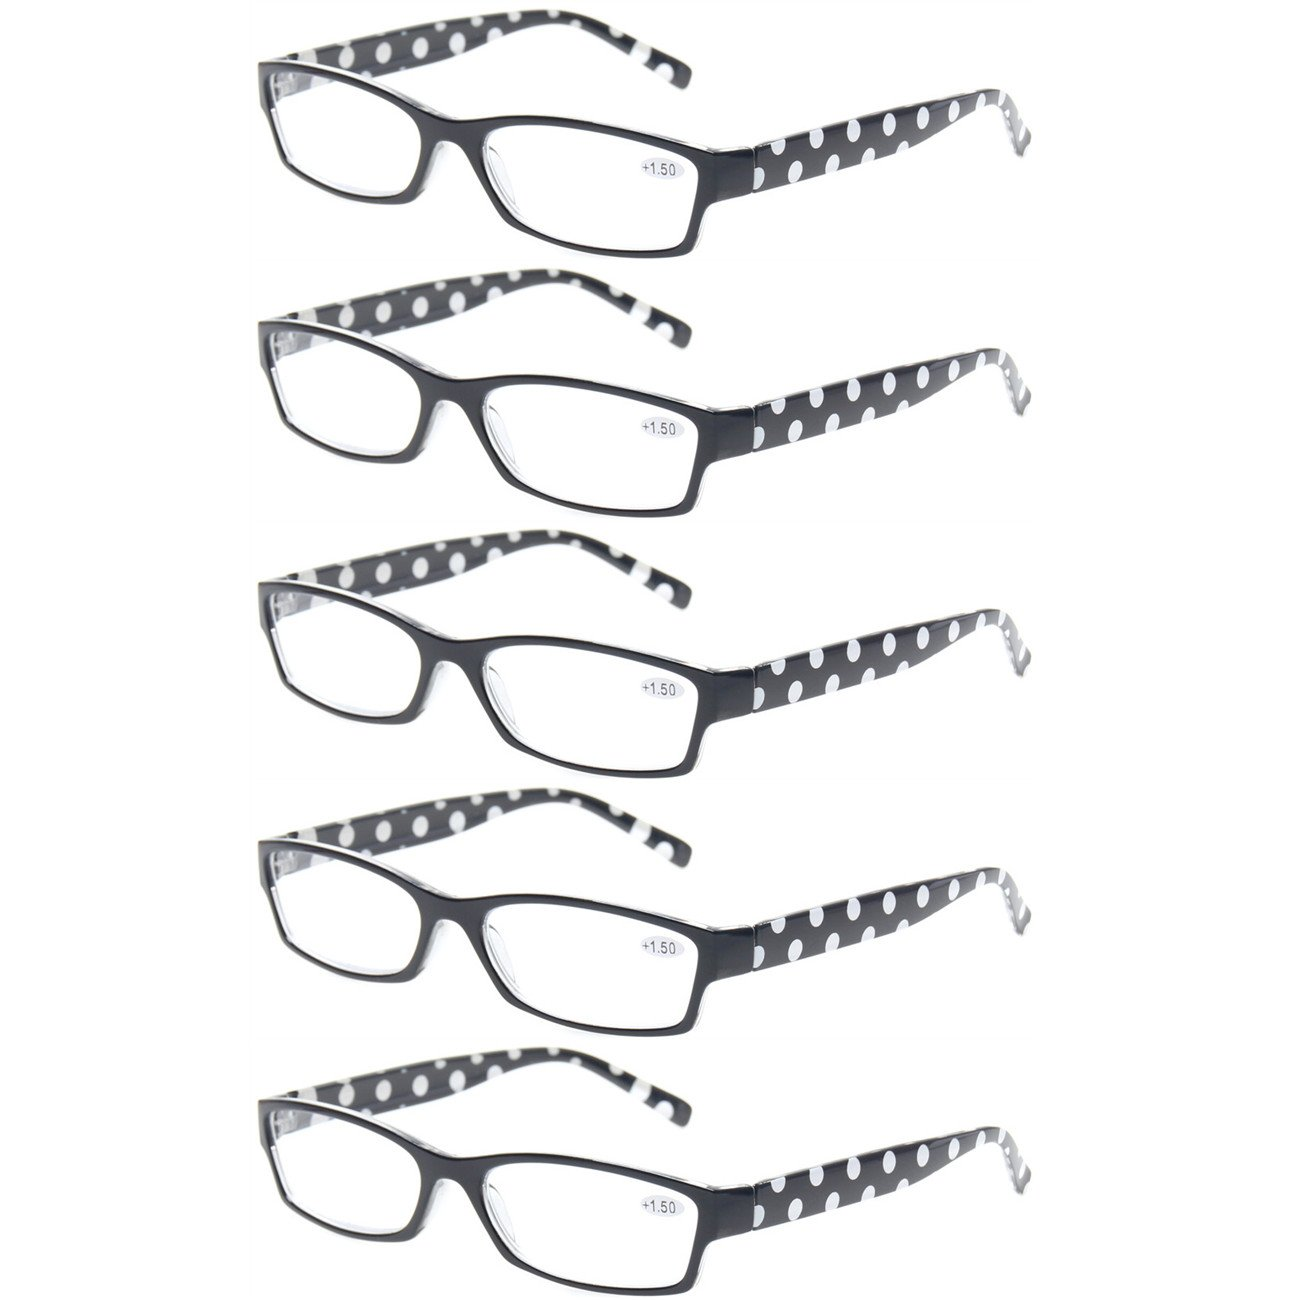 Reading Glasses 5 Pack Great Value Ladies Readers Quality Fashion Glasses for Women (5 Pack Black, 2.75) by Kerecsen